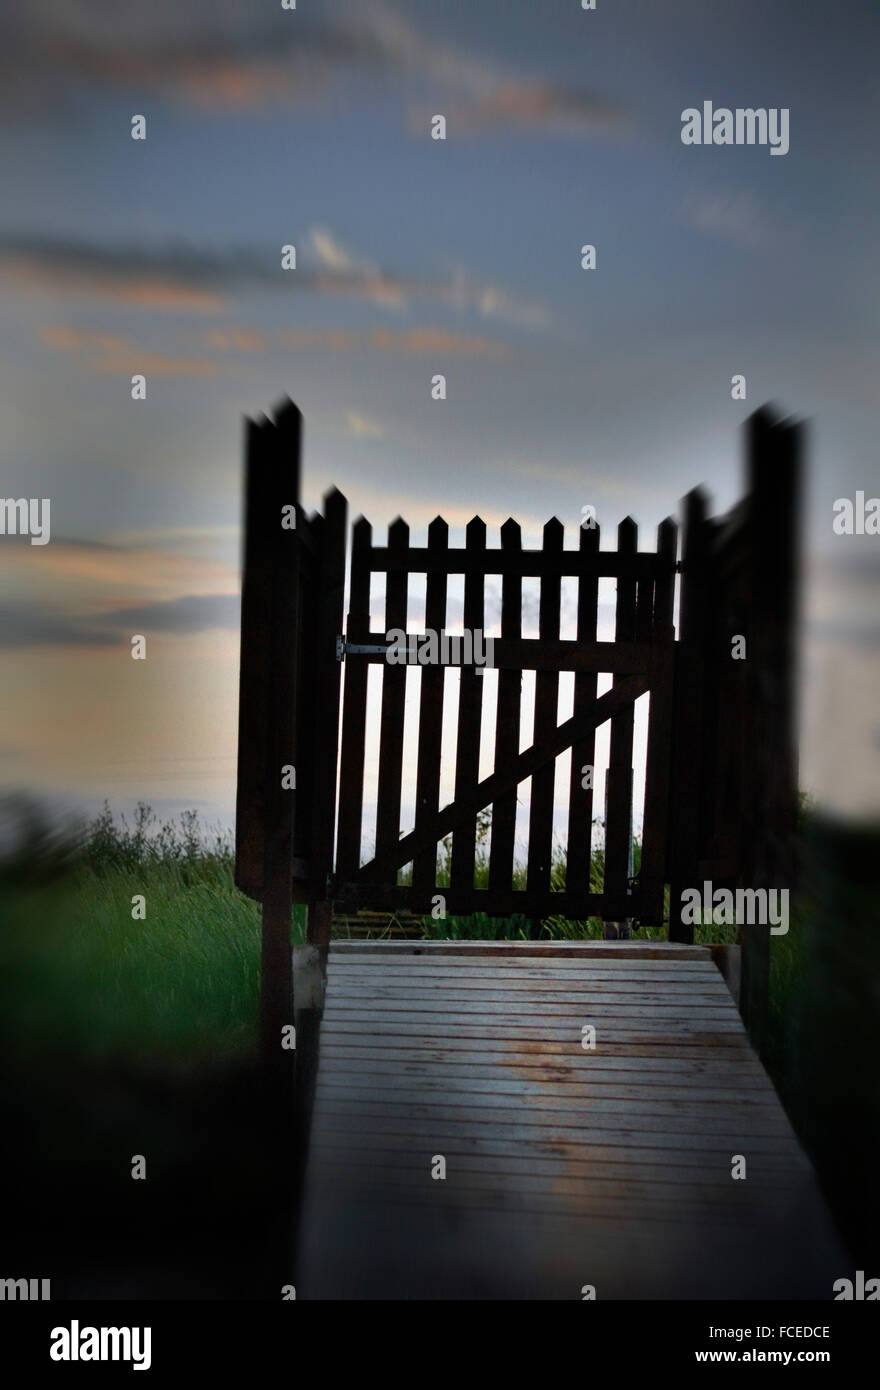 wooden entry gate - Stock Image